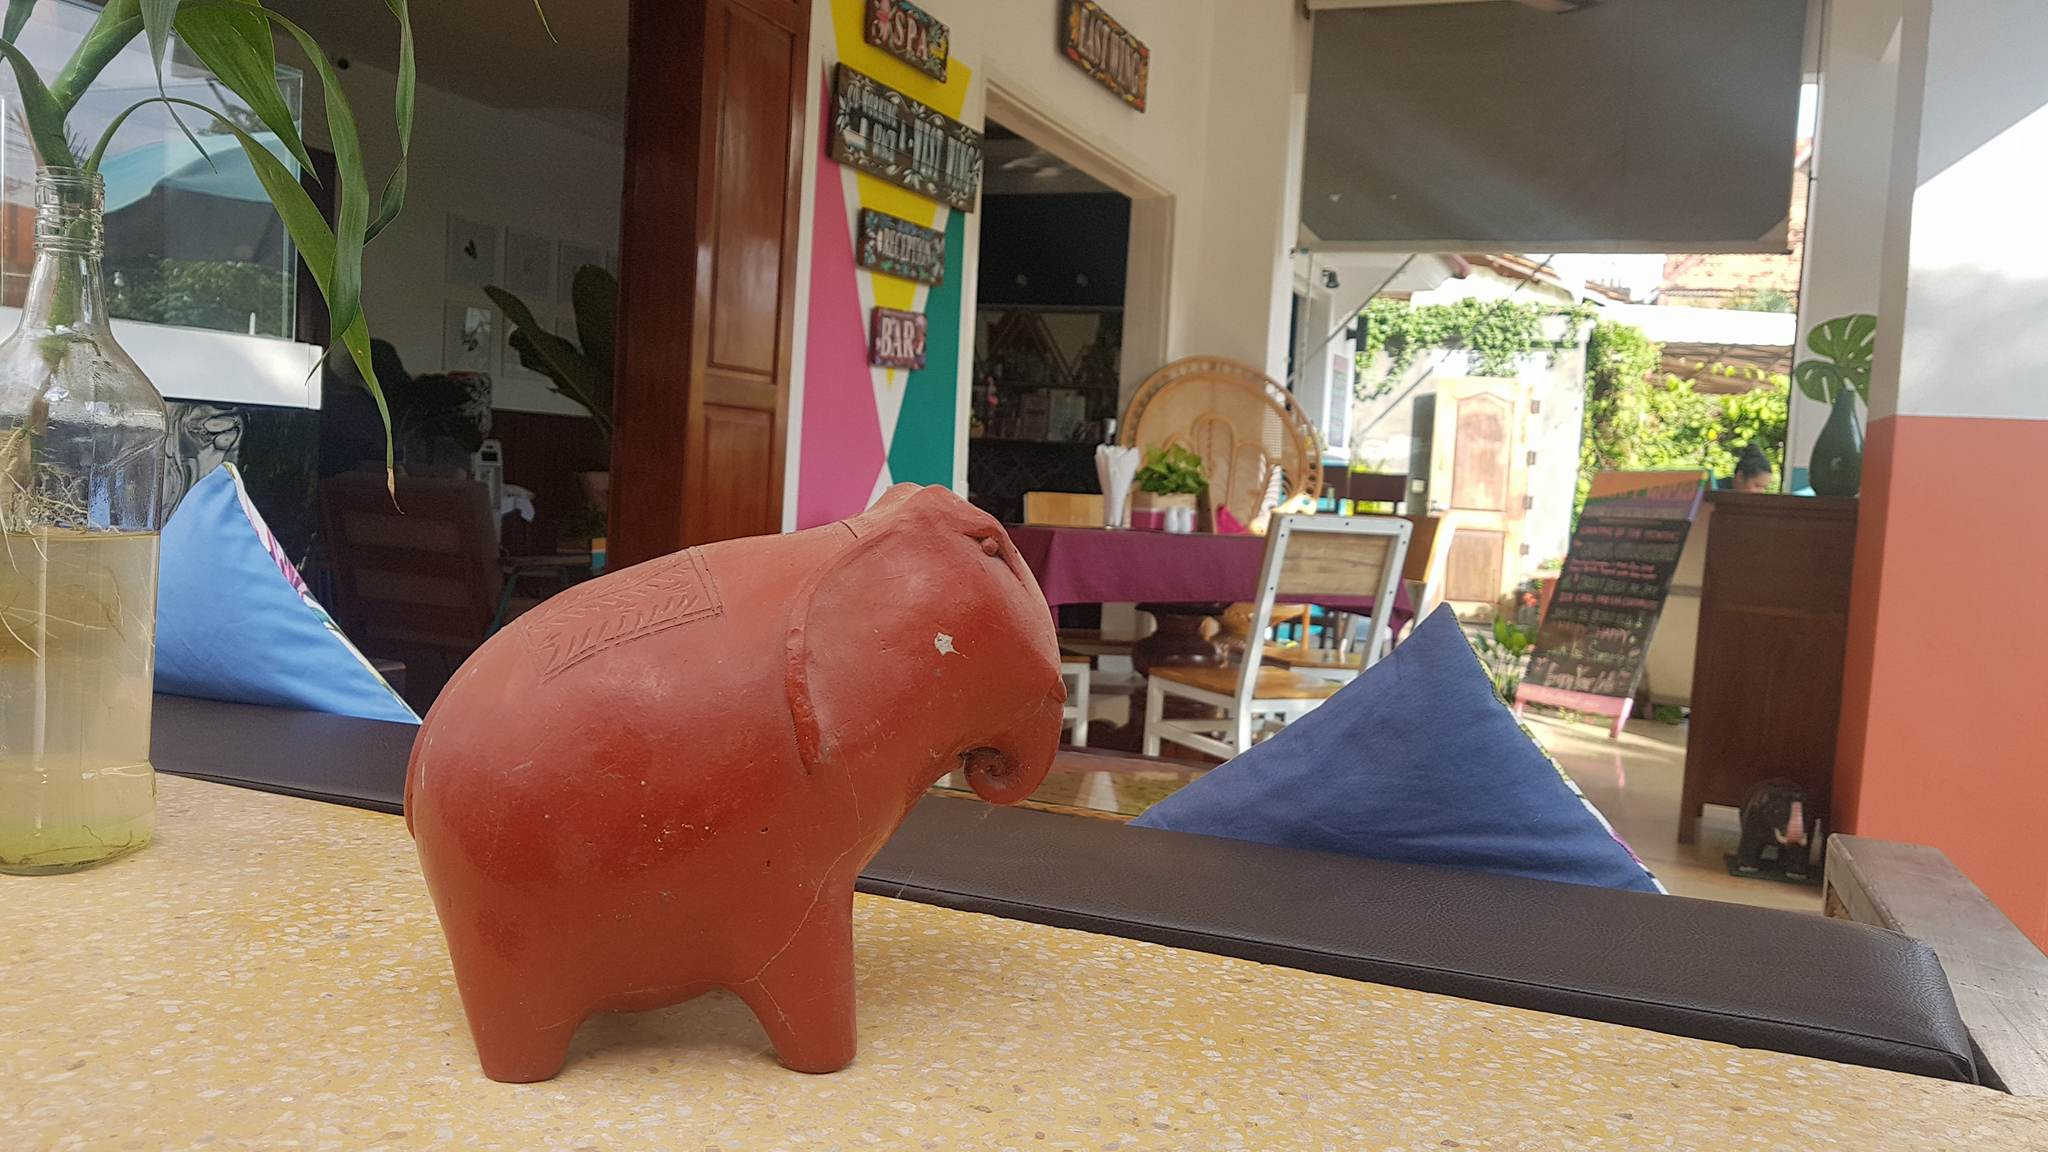 Theam's House elephant statue at Baby Elephant Boutique Hotel in Siem Reap, Cambodia - photo by Baby Elephant Boutique Hotel